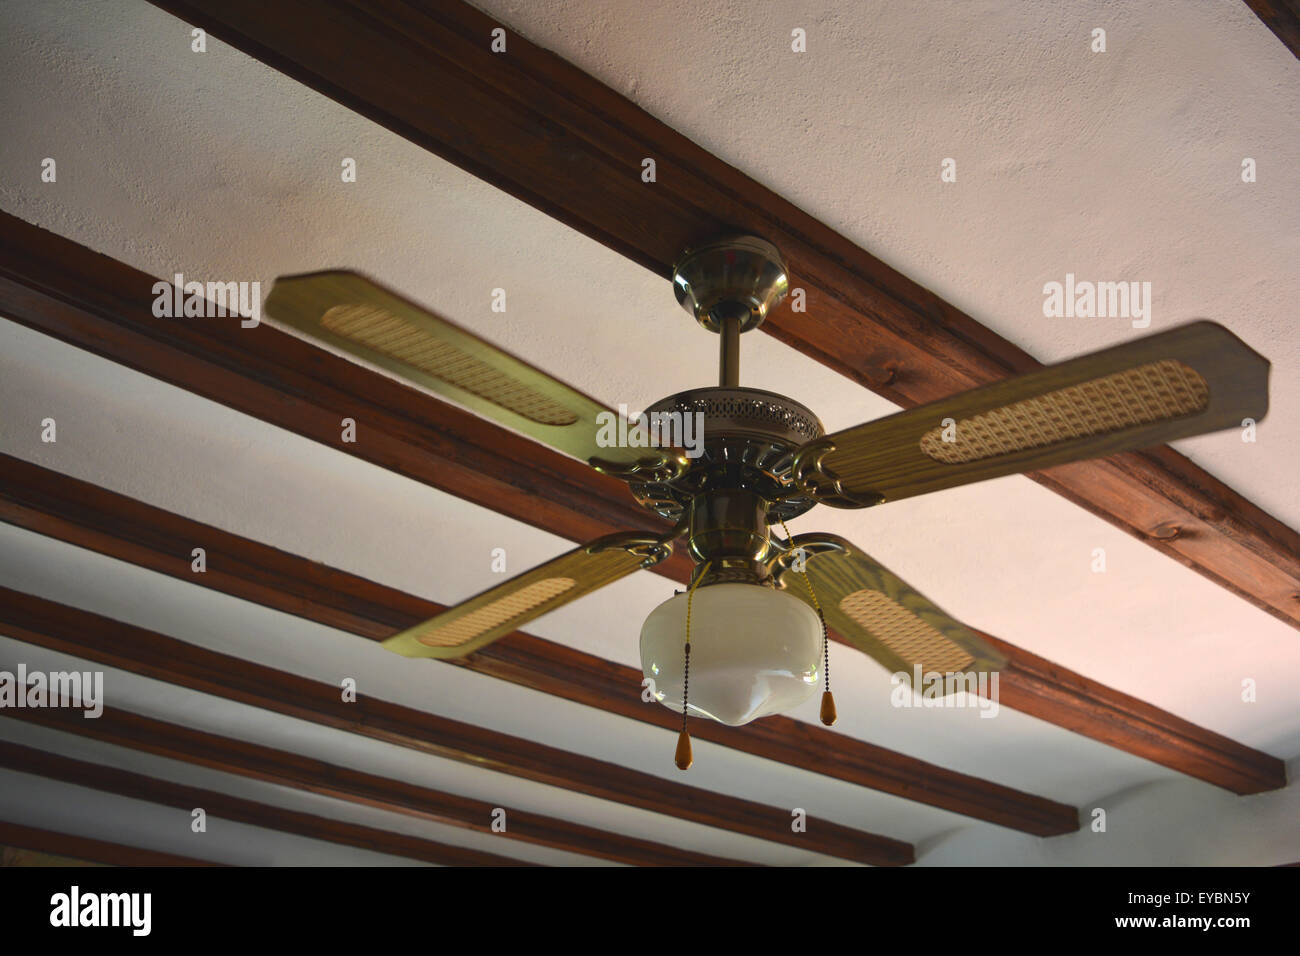 ceiling fan with a light fitting, spain stock photo, royalty free